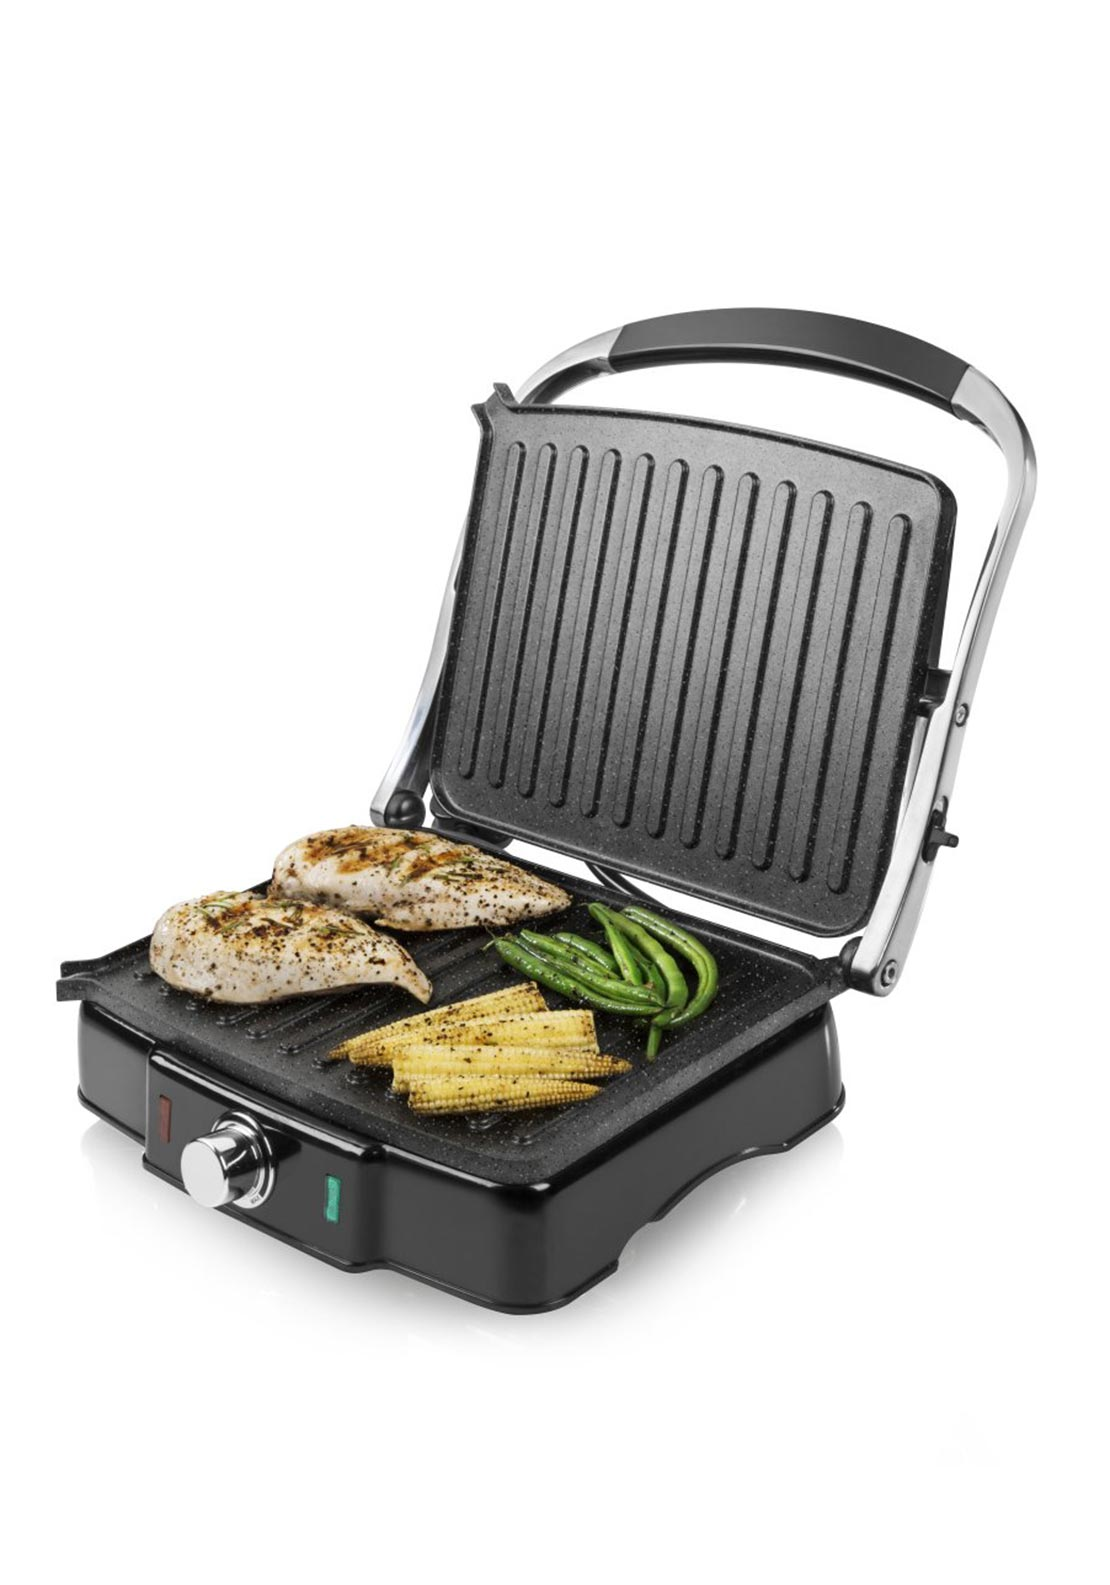 Tower 3 in 1 Health Grill